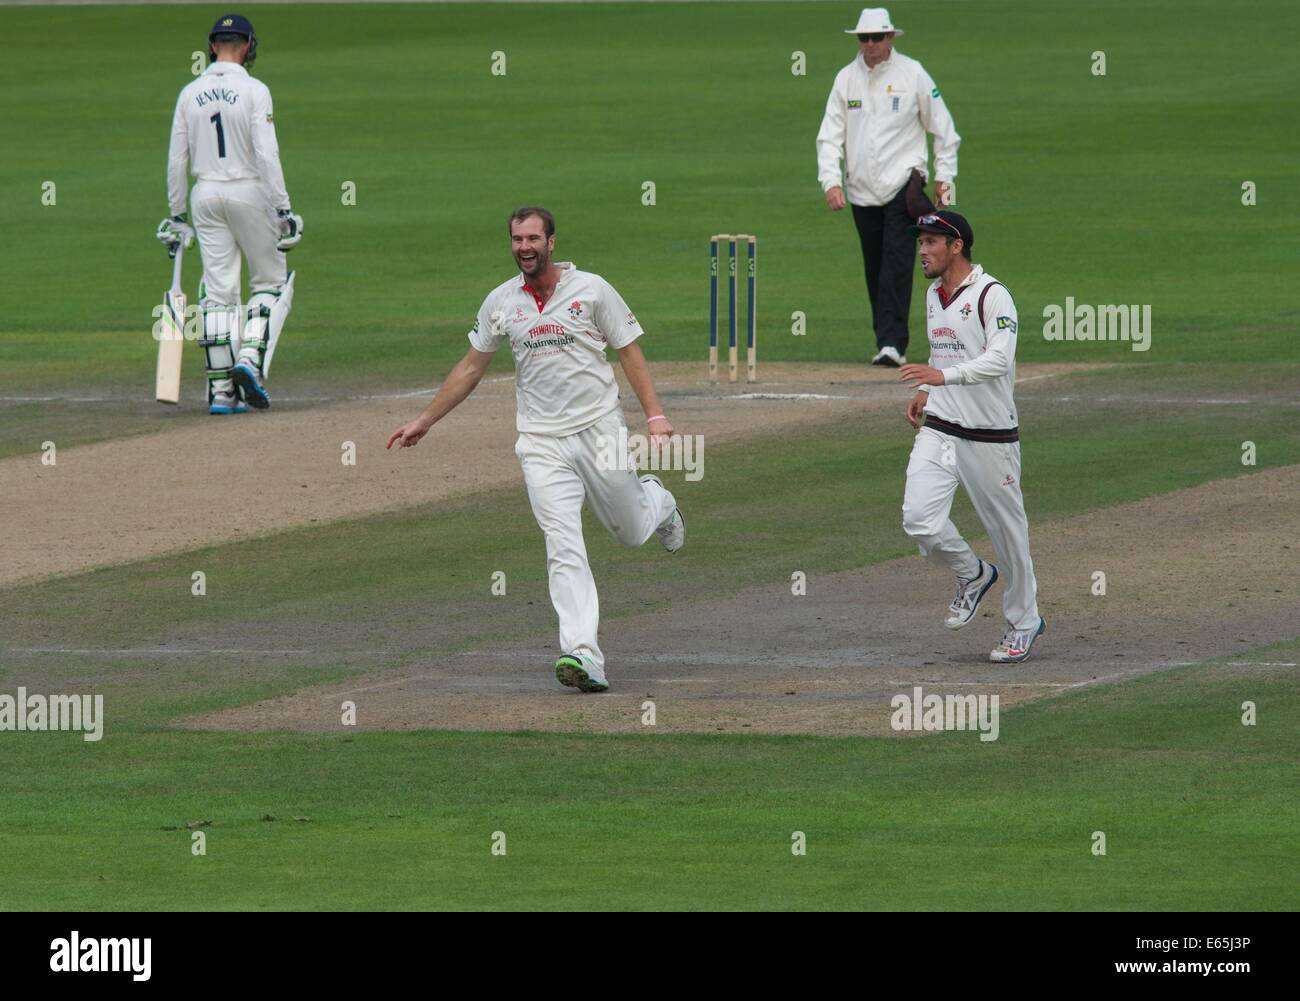 Emirates Old Trafford, Manchester, UK. 15th Aug, 2014. Tom Smith (Lancashire) celebrates taking the first wicket Stock Photo